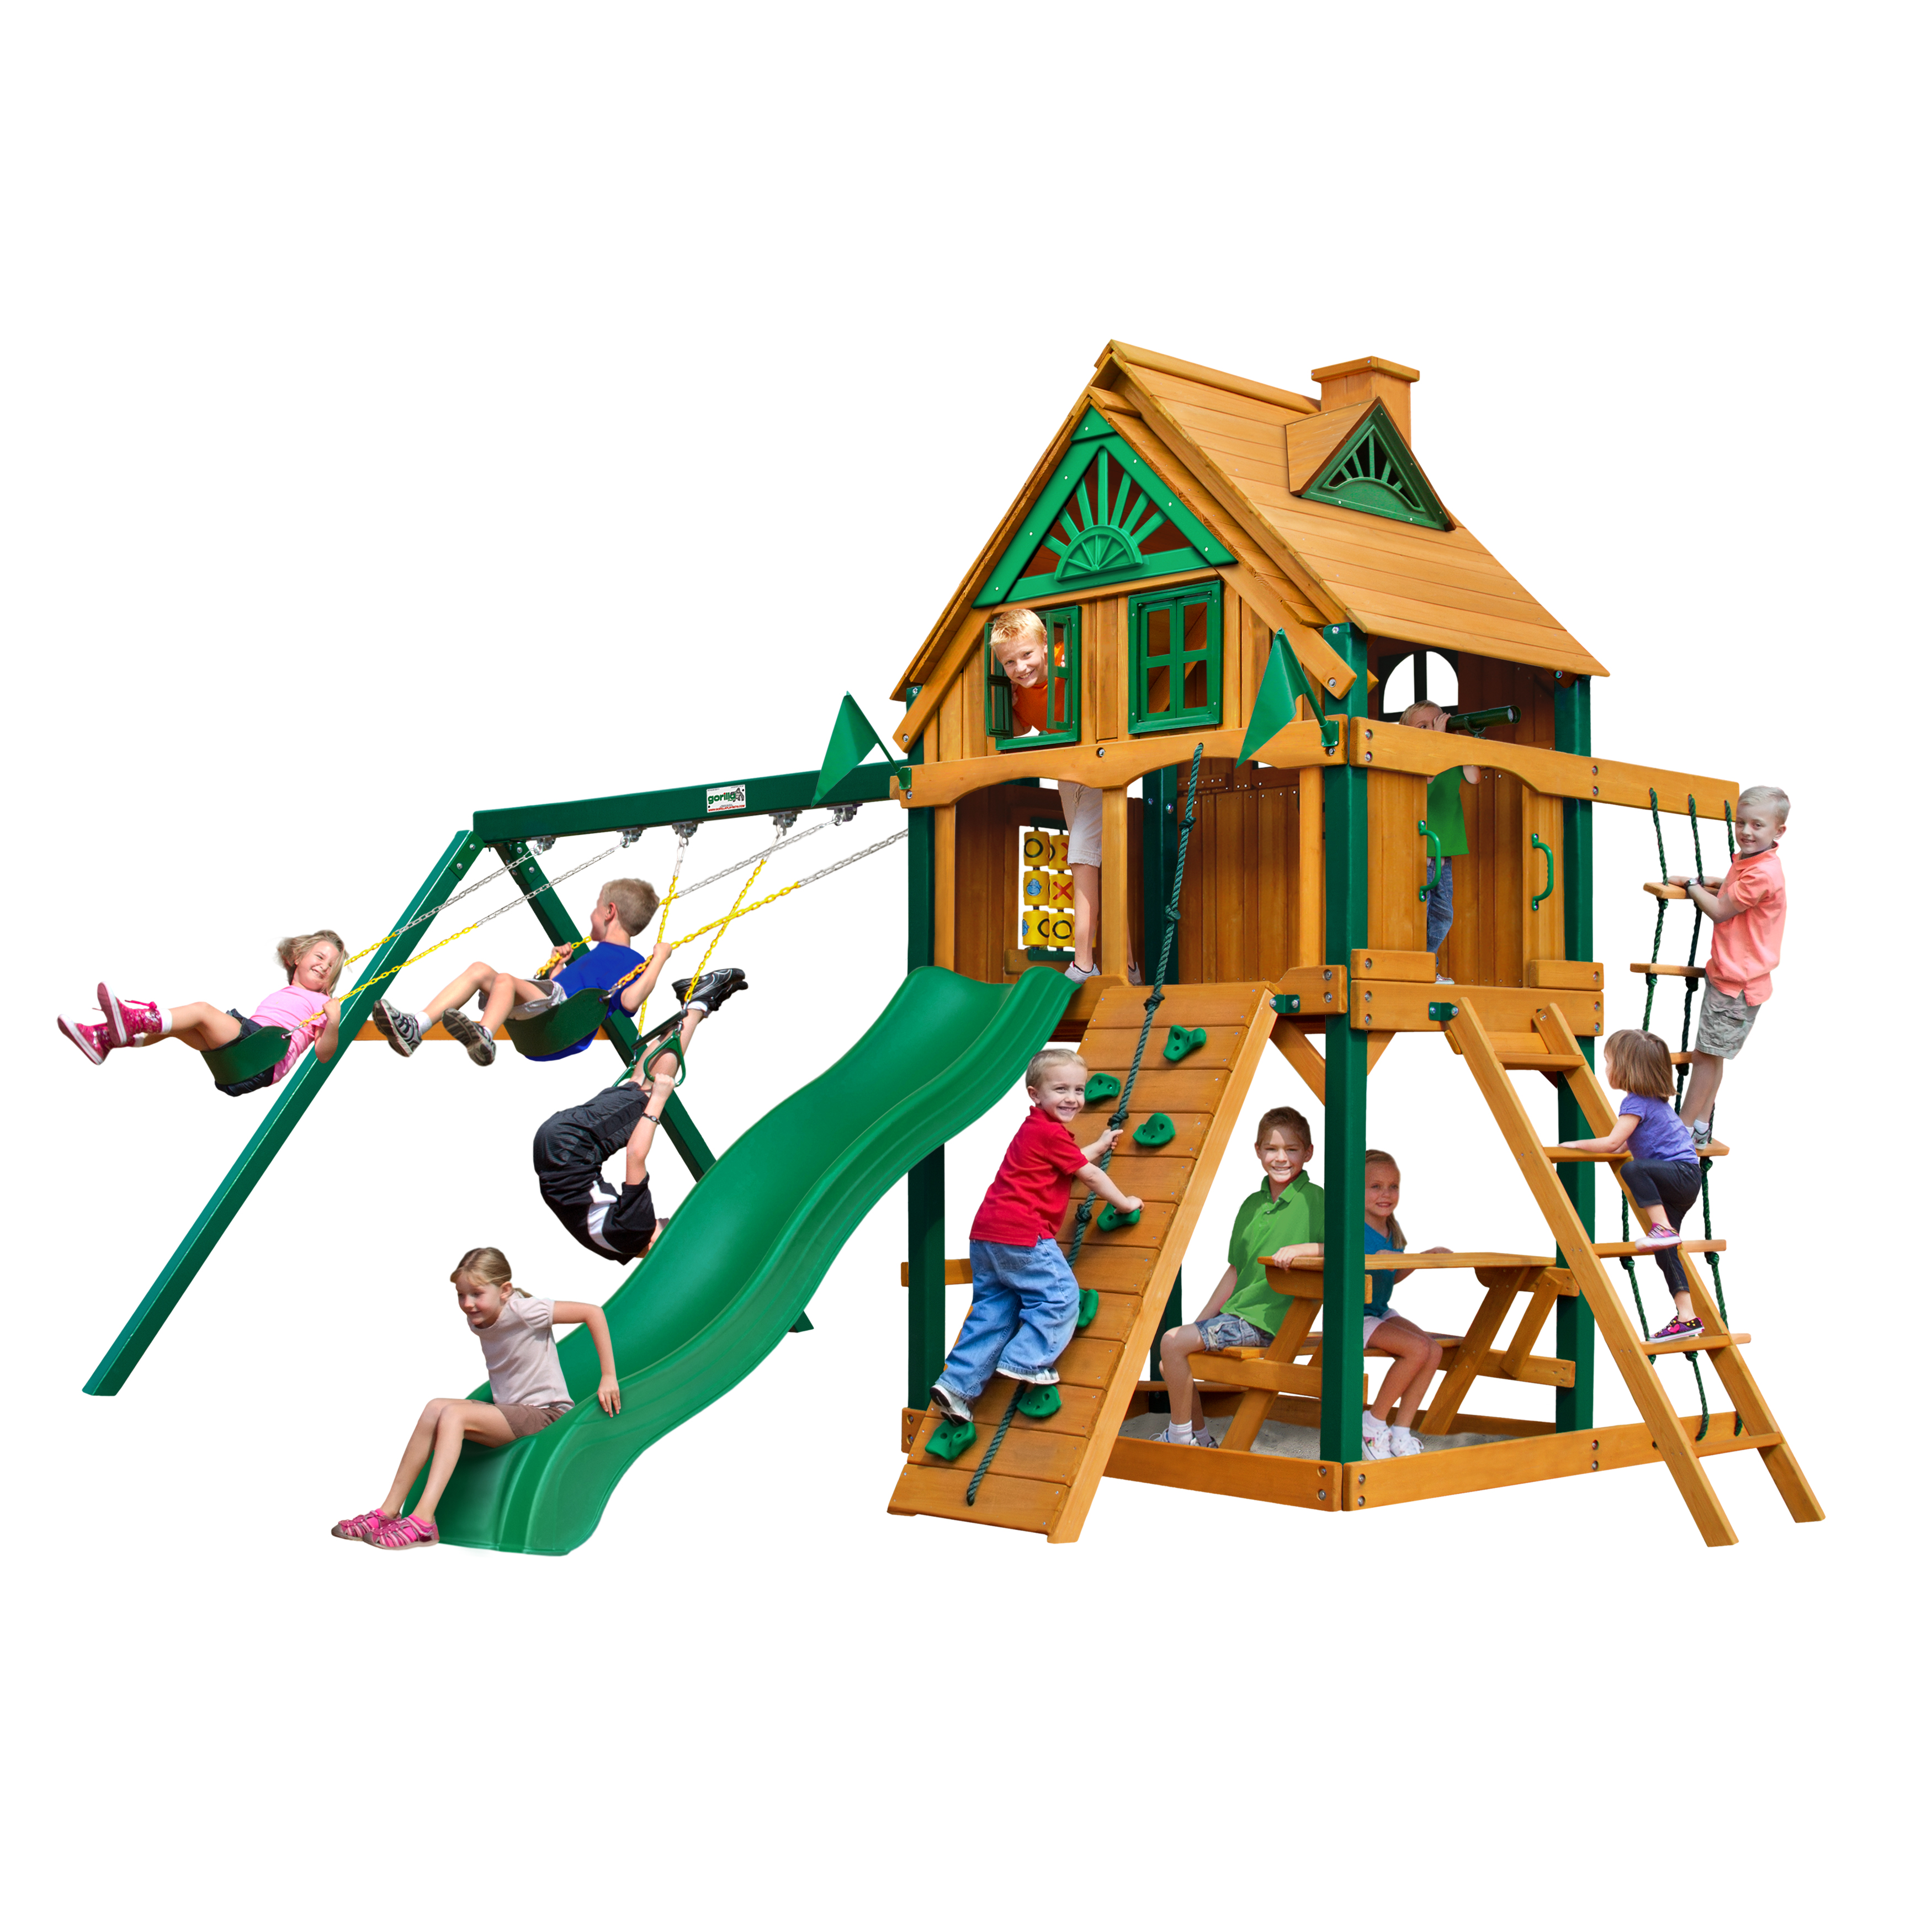 Gorilla Playsets Chateau Clubhouse Treehouse Cedar Swing Set with Fort Add-On & Timber Shield Posts